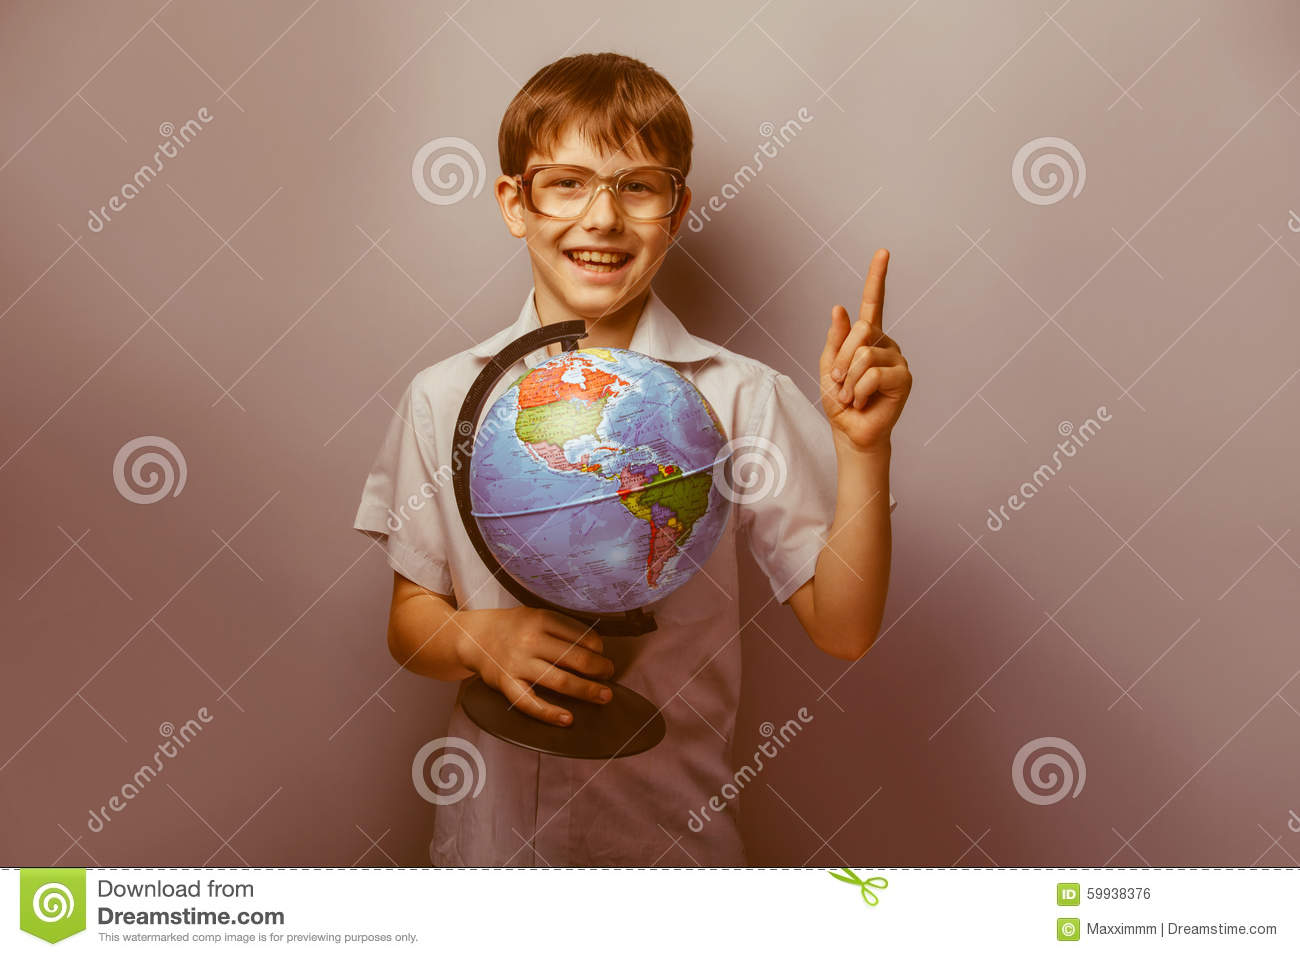 A Boy Of 10 Years Of European Appearance With Stock Photo